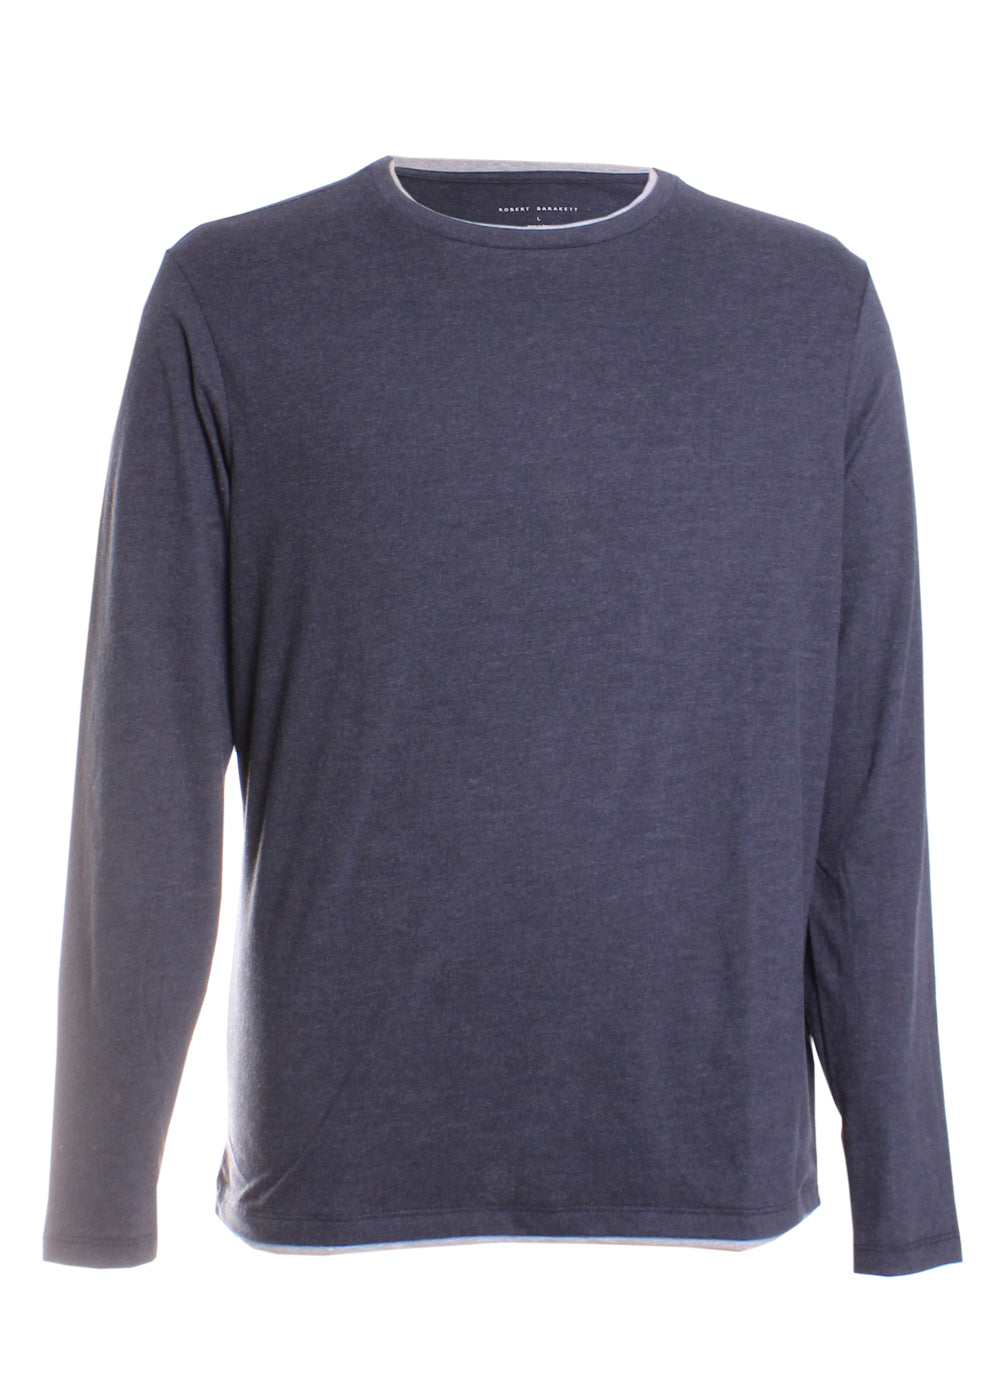 Halifax Long Sleeve Crew Tee